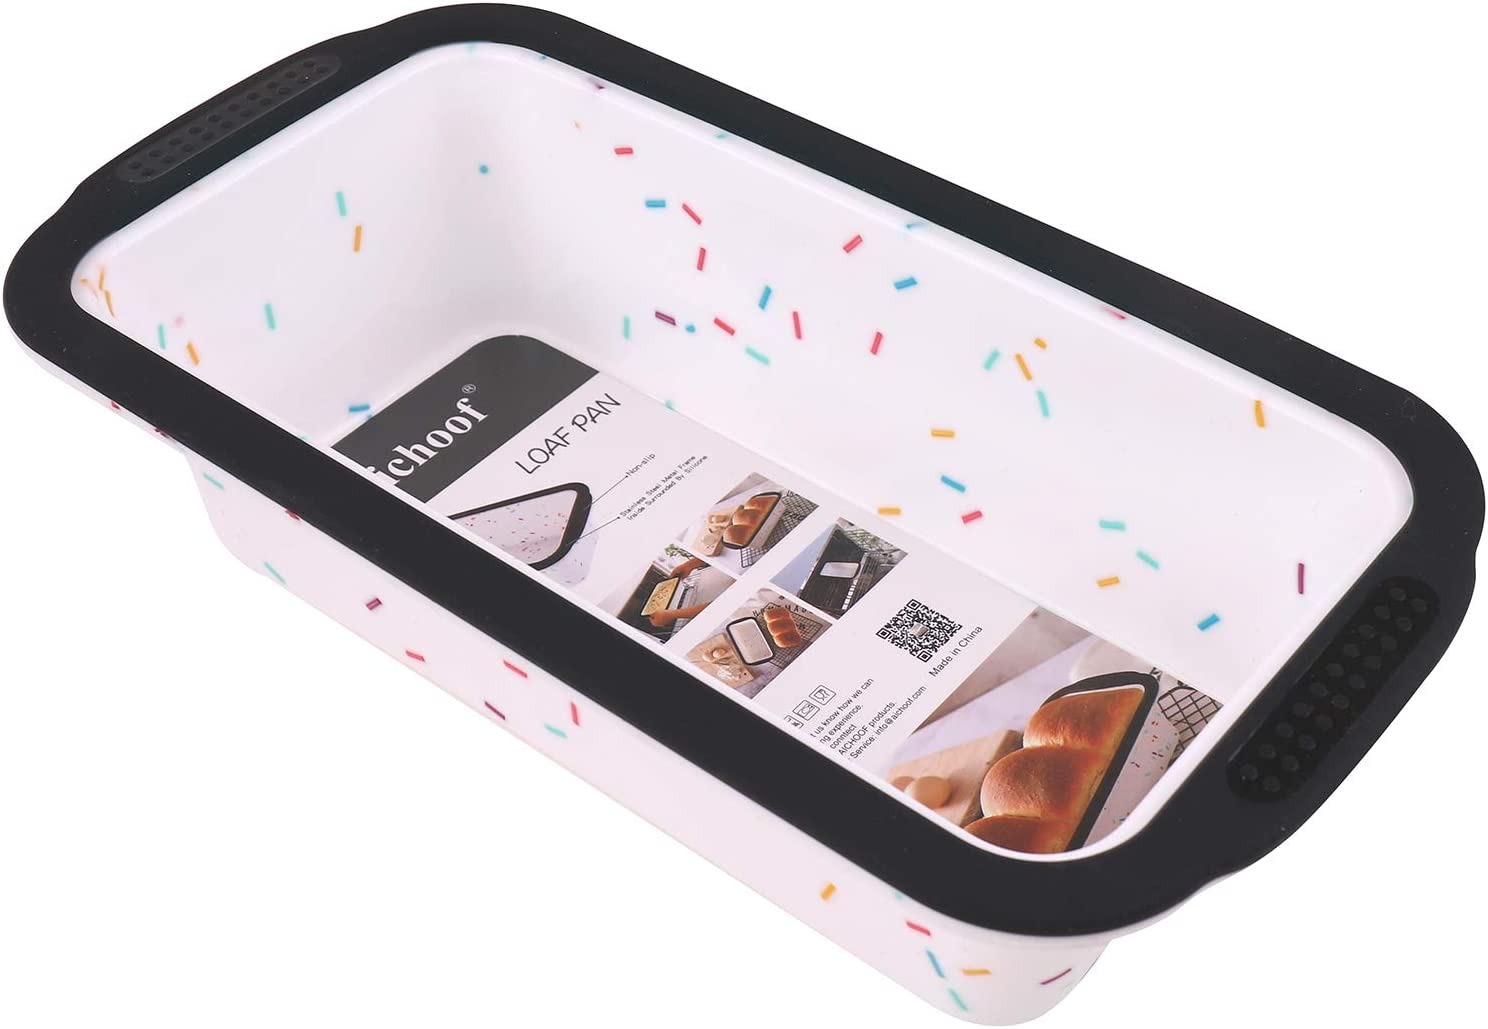 Silicone Loaf Pan with Reinforced Steel Frame Inside,Non-stick Loaf Mould for Homemade Baking Cakes and Bread,BPA Free,Dishwasher,Oven and Microwave safer,Aichoof